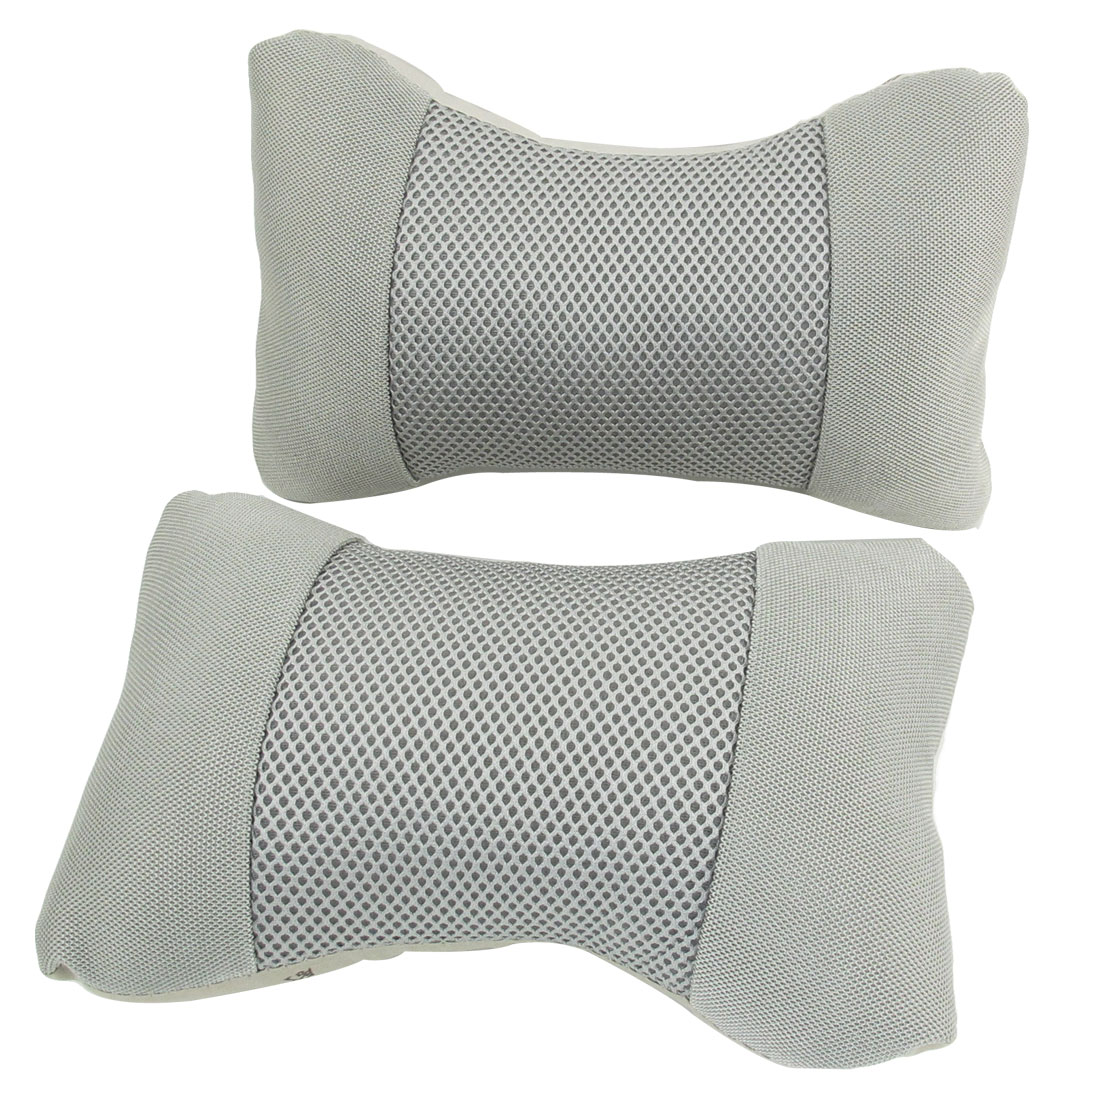 2 Pcs Car Breathable Mesh Design Stretchy Band Head Neck Rest Pilows Ash Gray